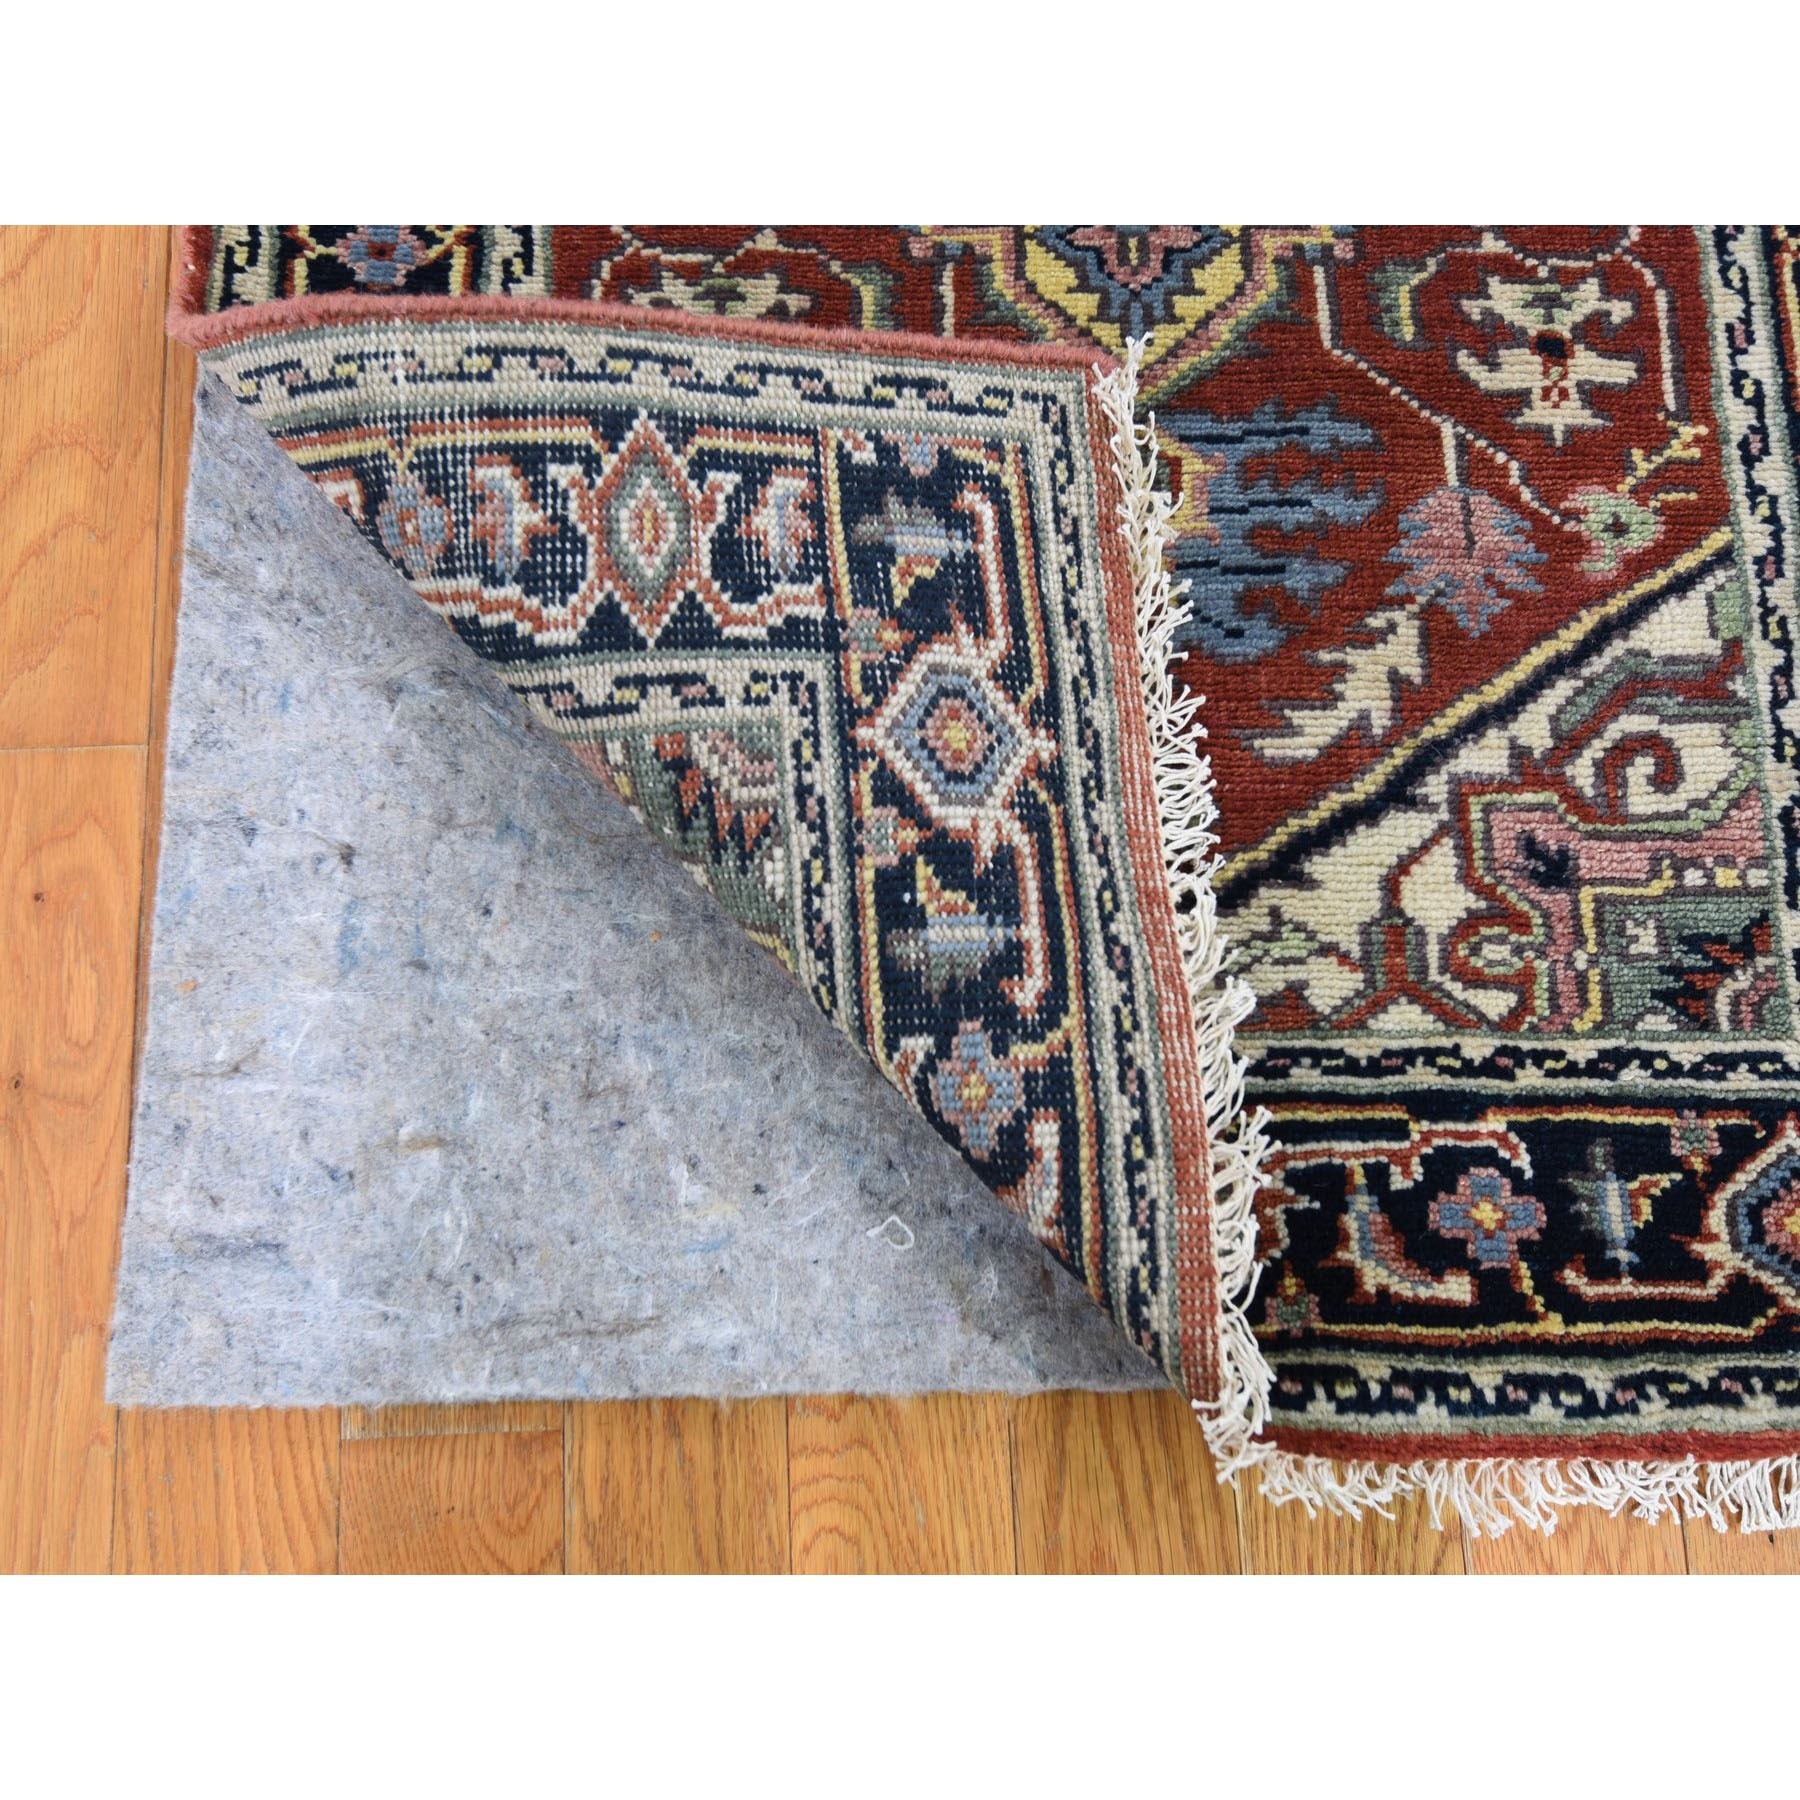 """2'4""""x6' Red Heriz Revival Pure Wool Runner Hand Knotted Oriental Rug"""